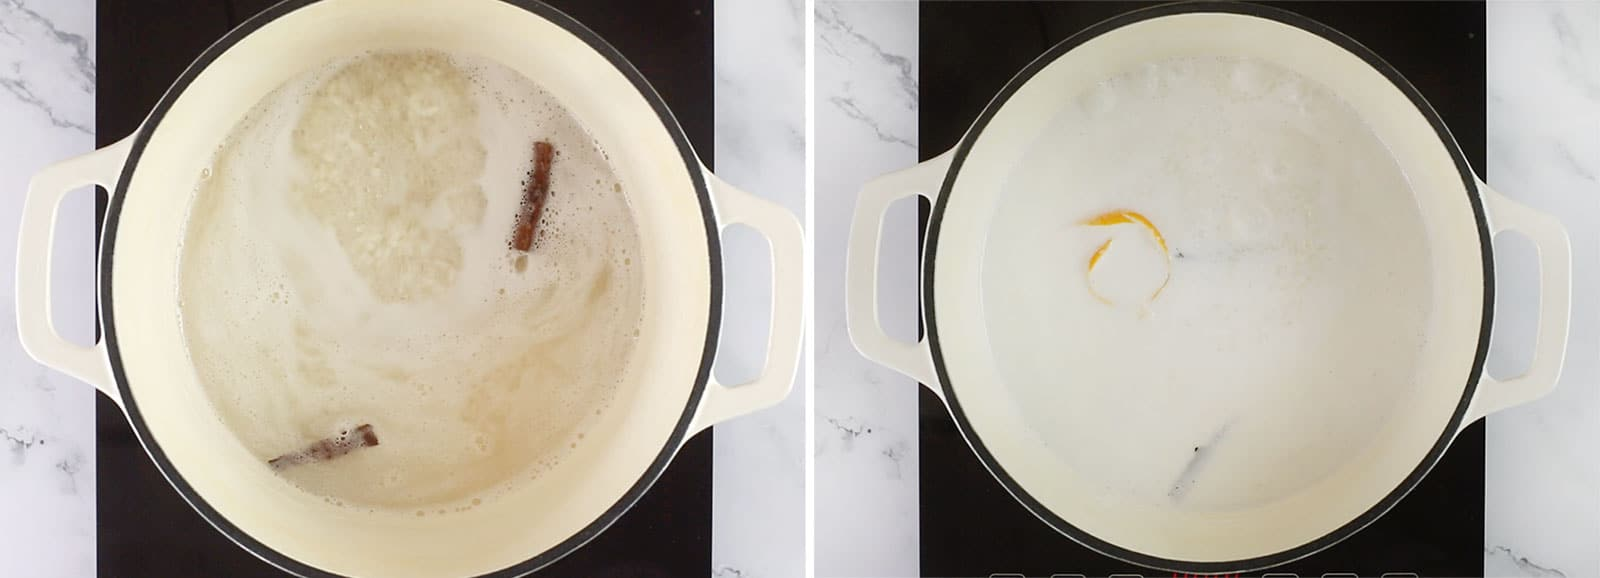 Arroz con leche in a pot. Pictured before and after adding the milk.